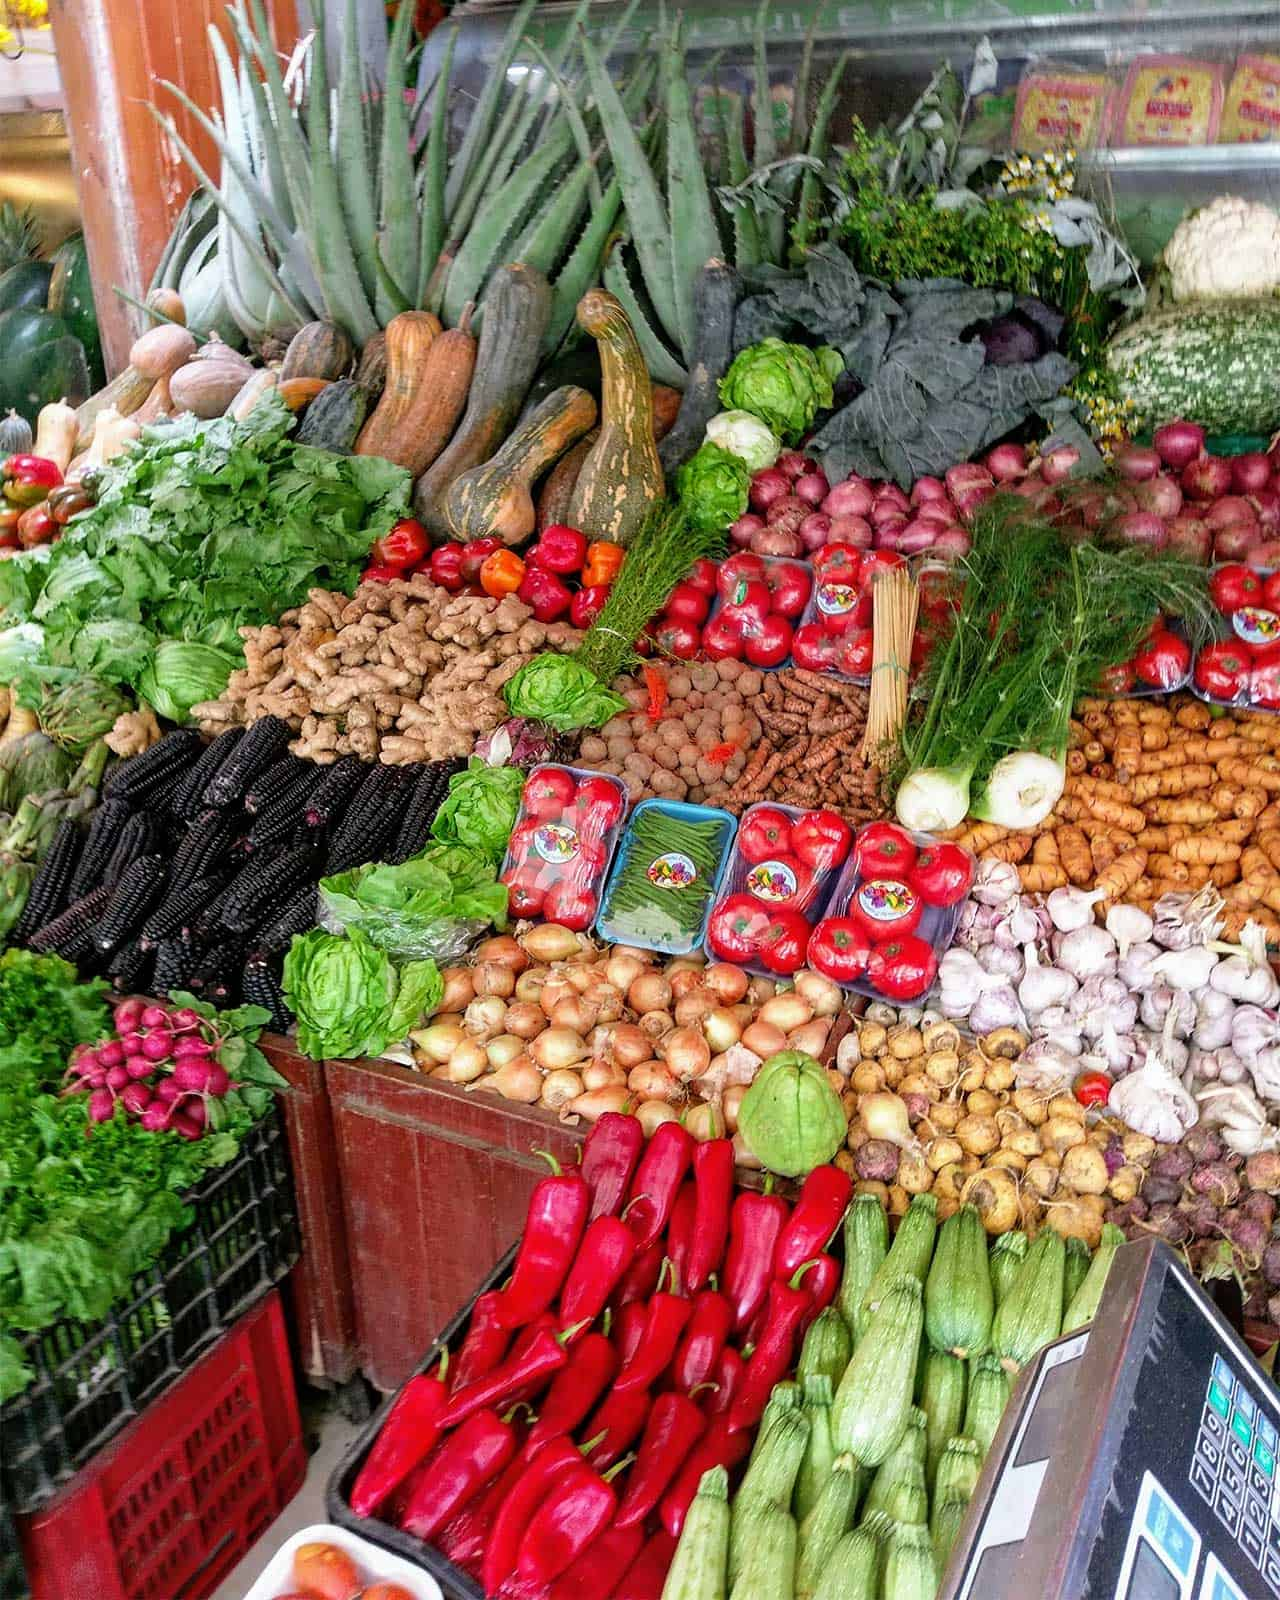 World Vegetarian Day – My thoughts on why we should all eat less meat